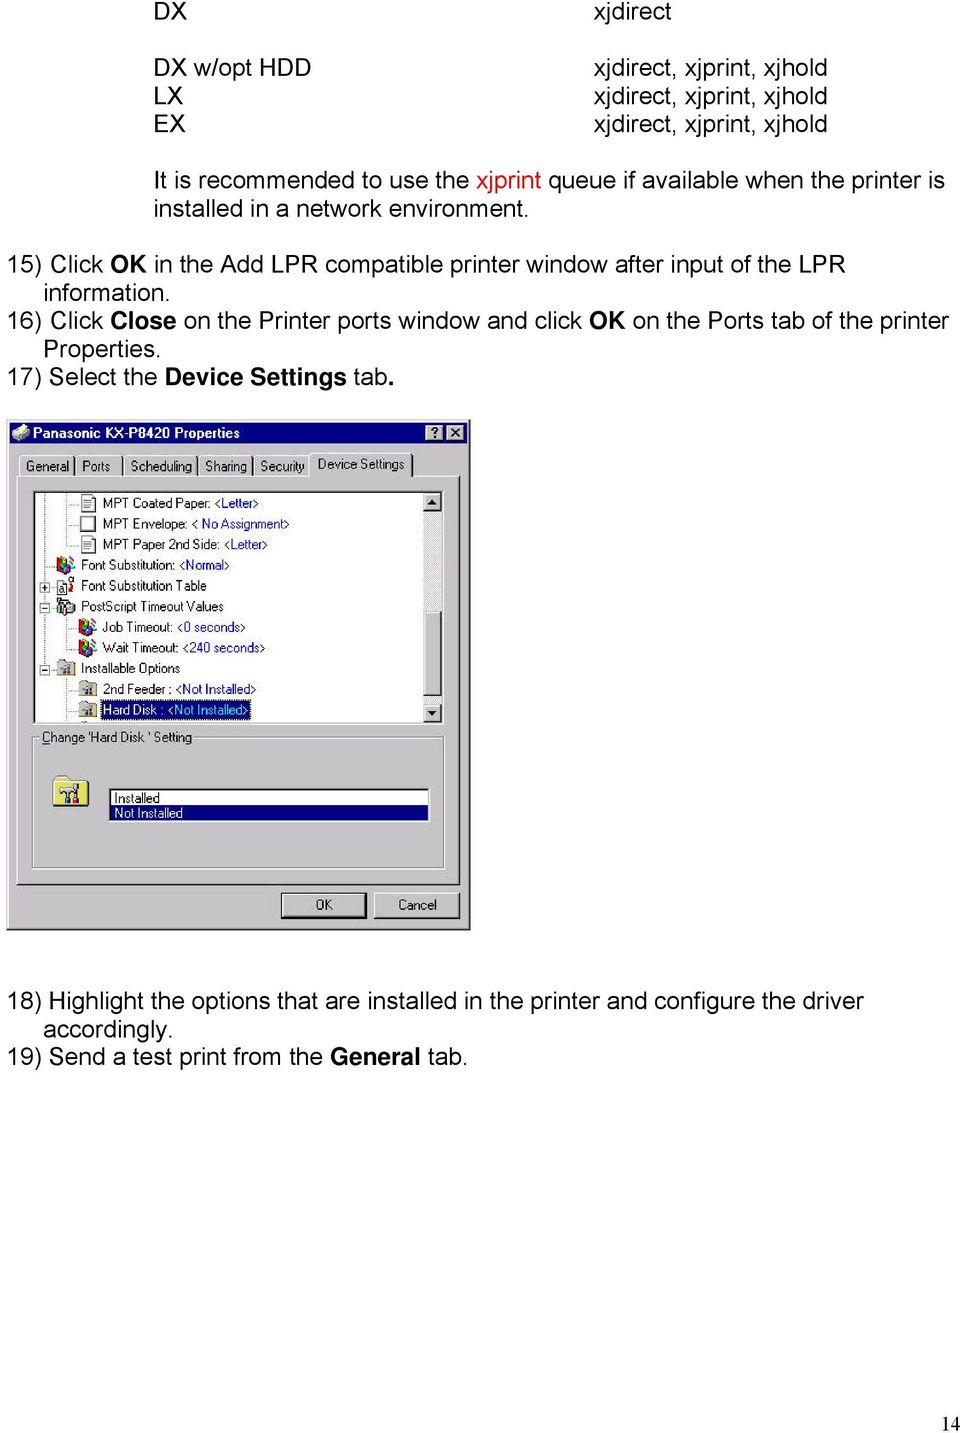 15) Click OK in the Add LPR compatible printer window after input of the LPR information.